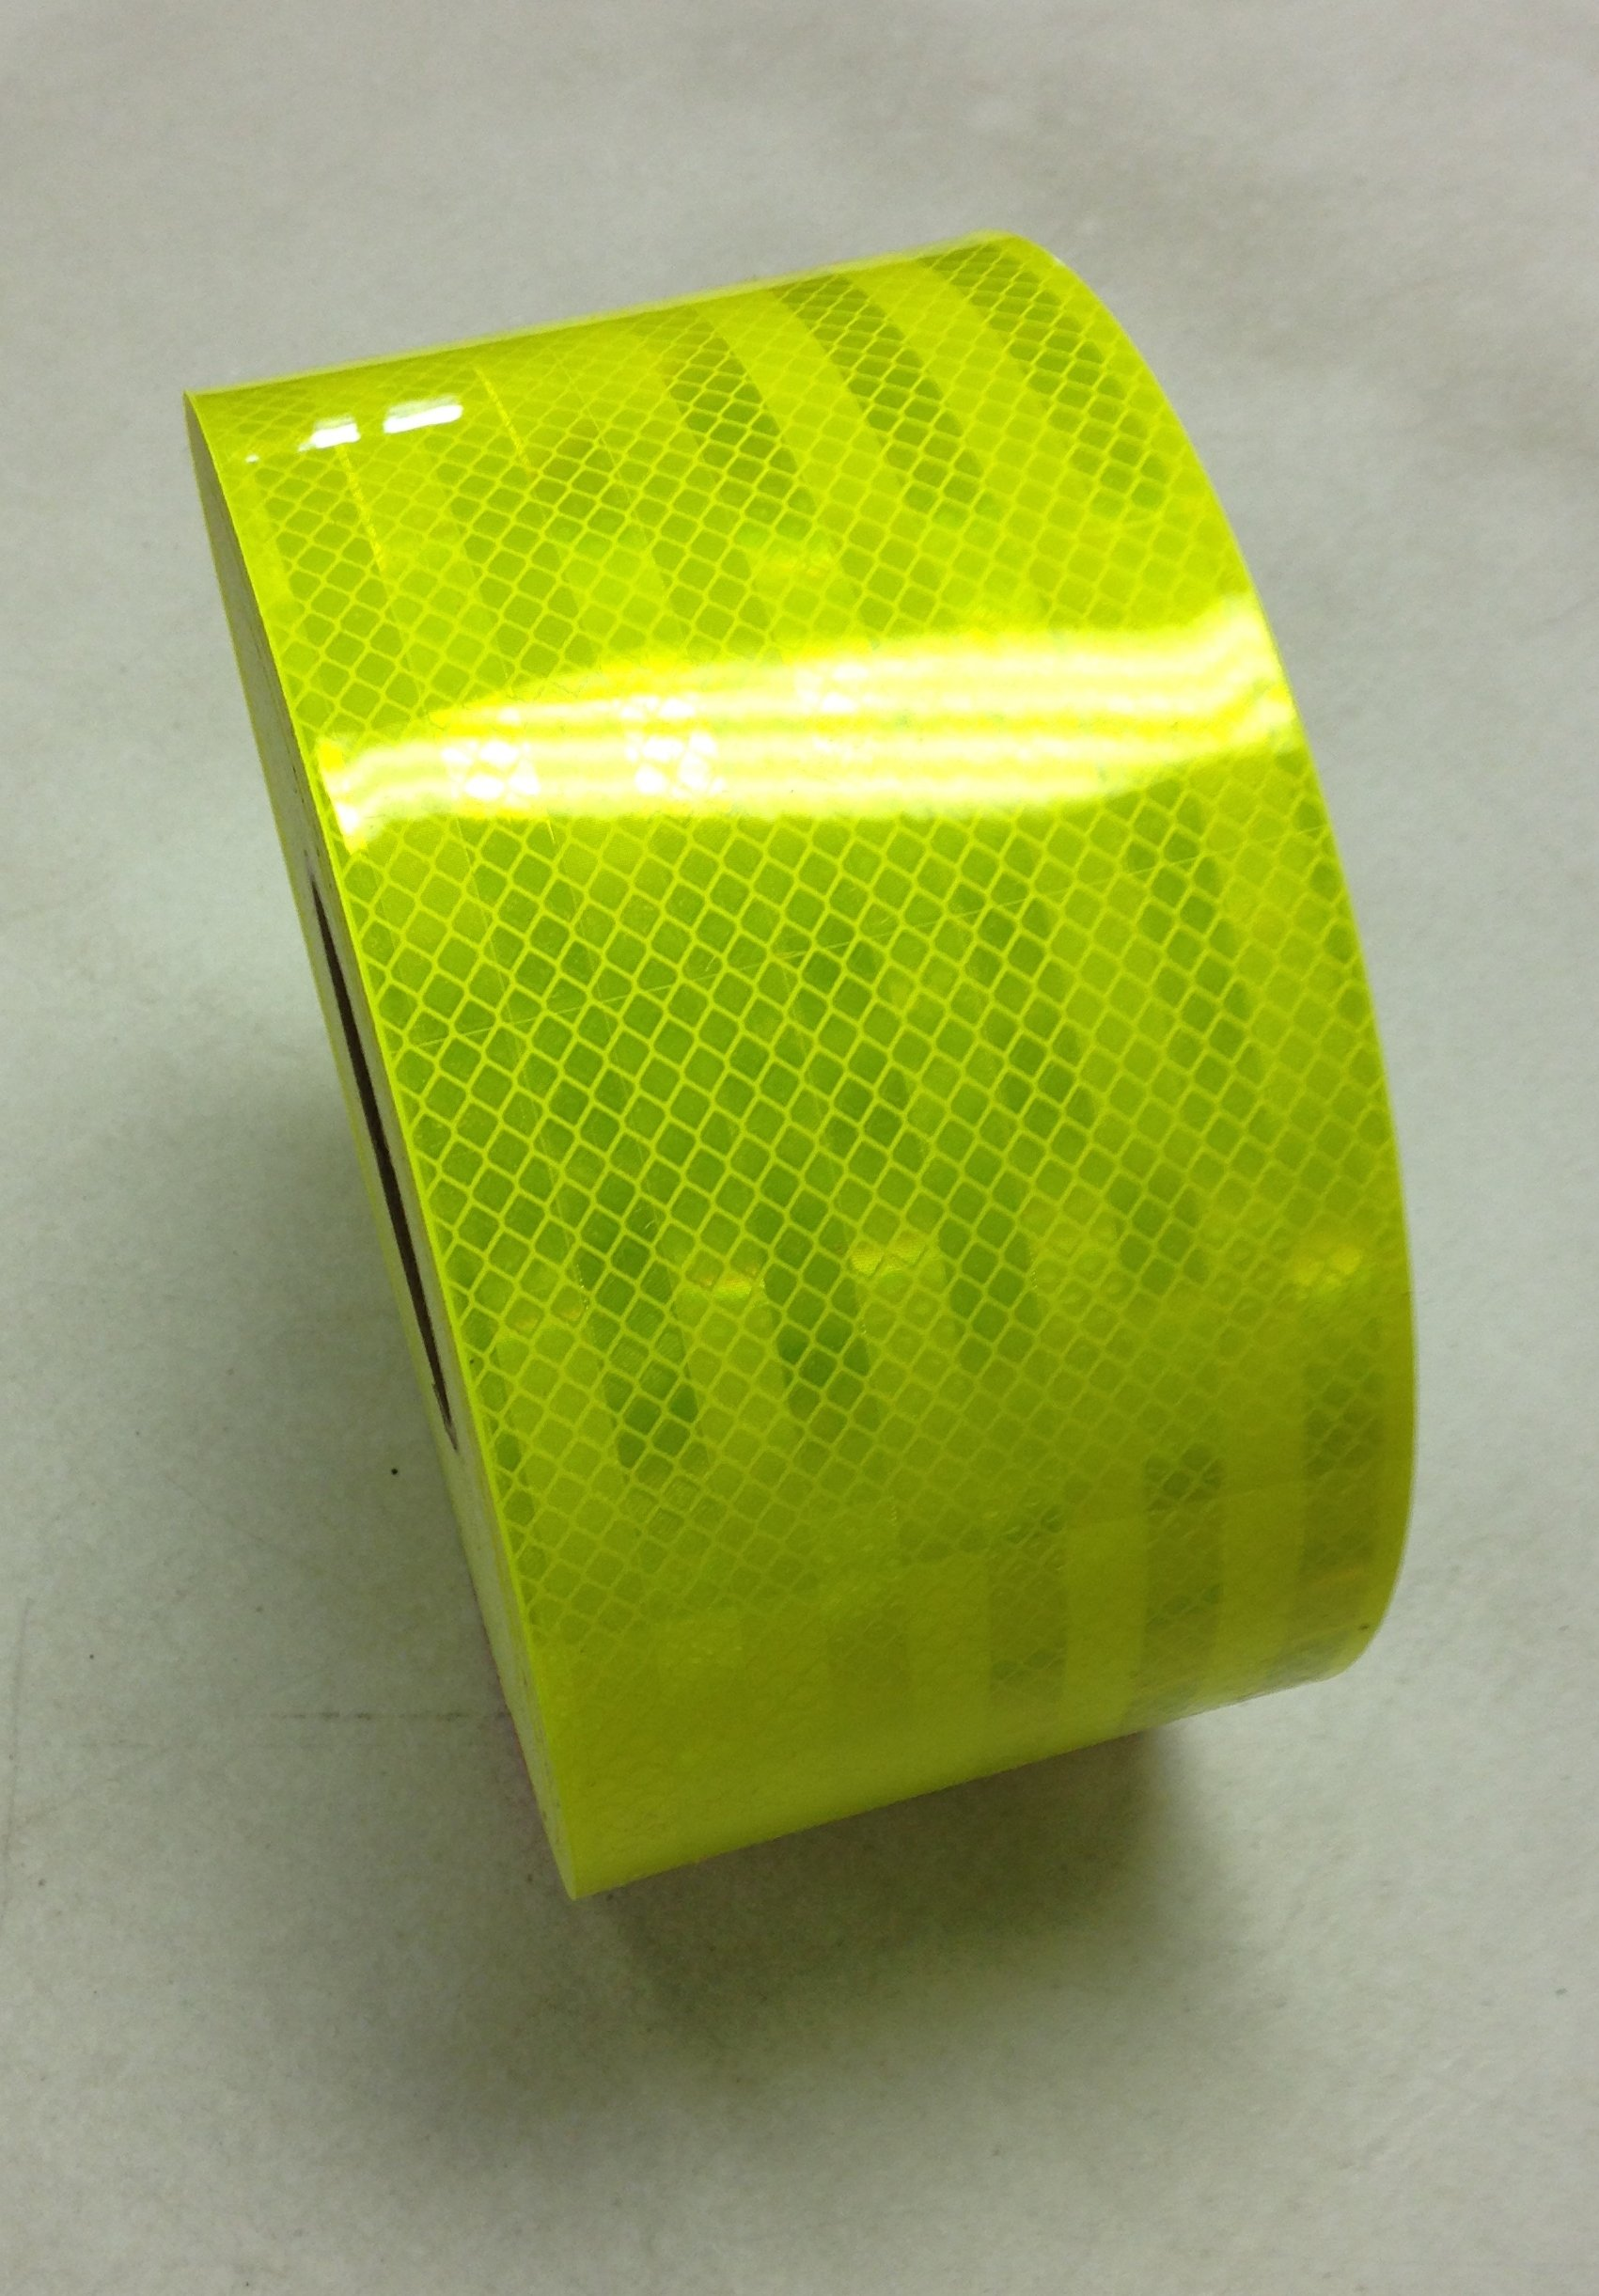 Safe Way Traction 4'' x 10' Roll 3M Fluorescent Yellow Green Reflective Hazard Warning Emergency Vehicle Safety Marking Tape 983-23